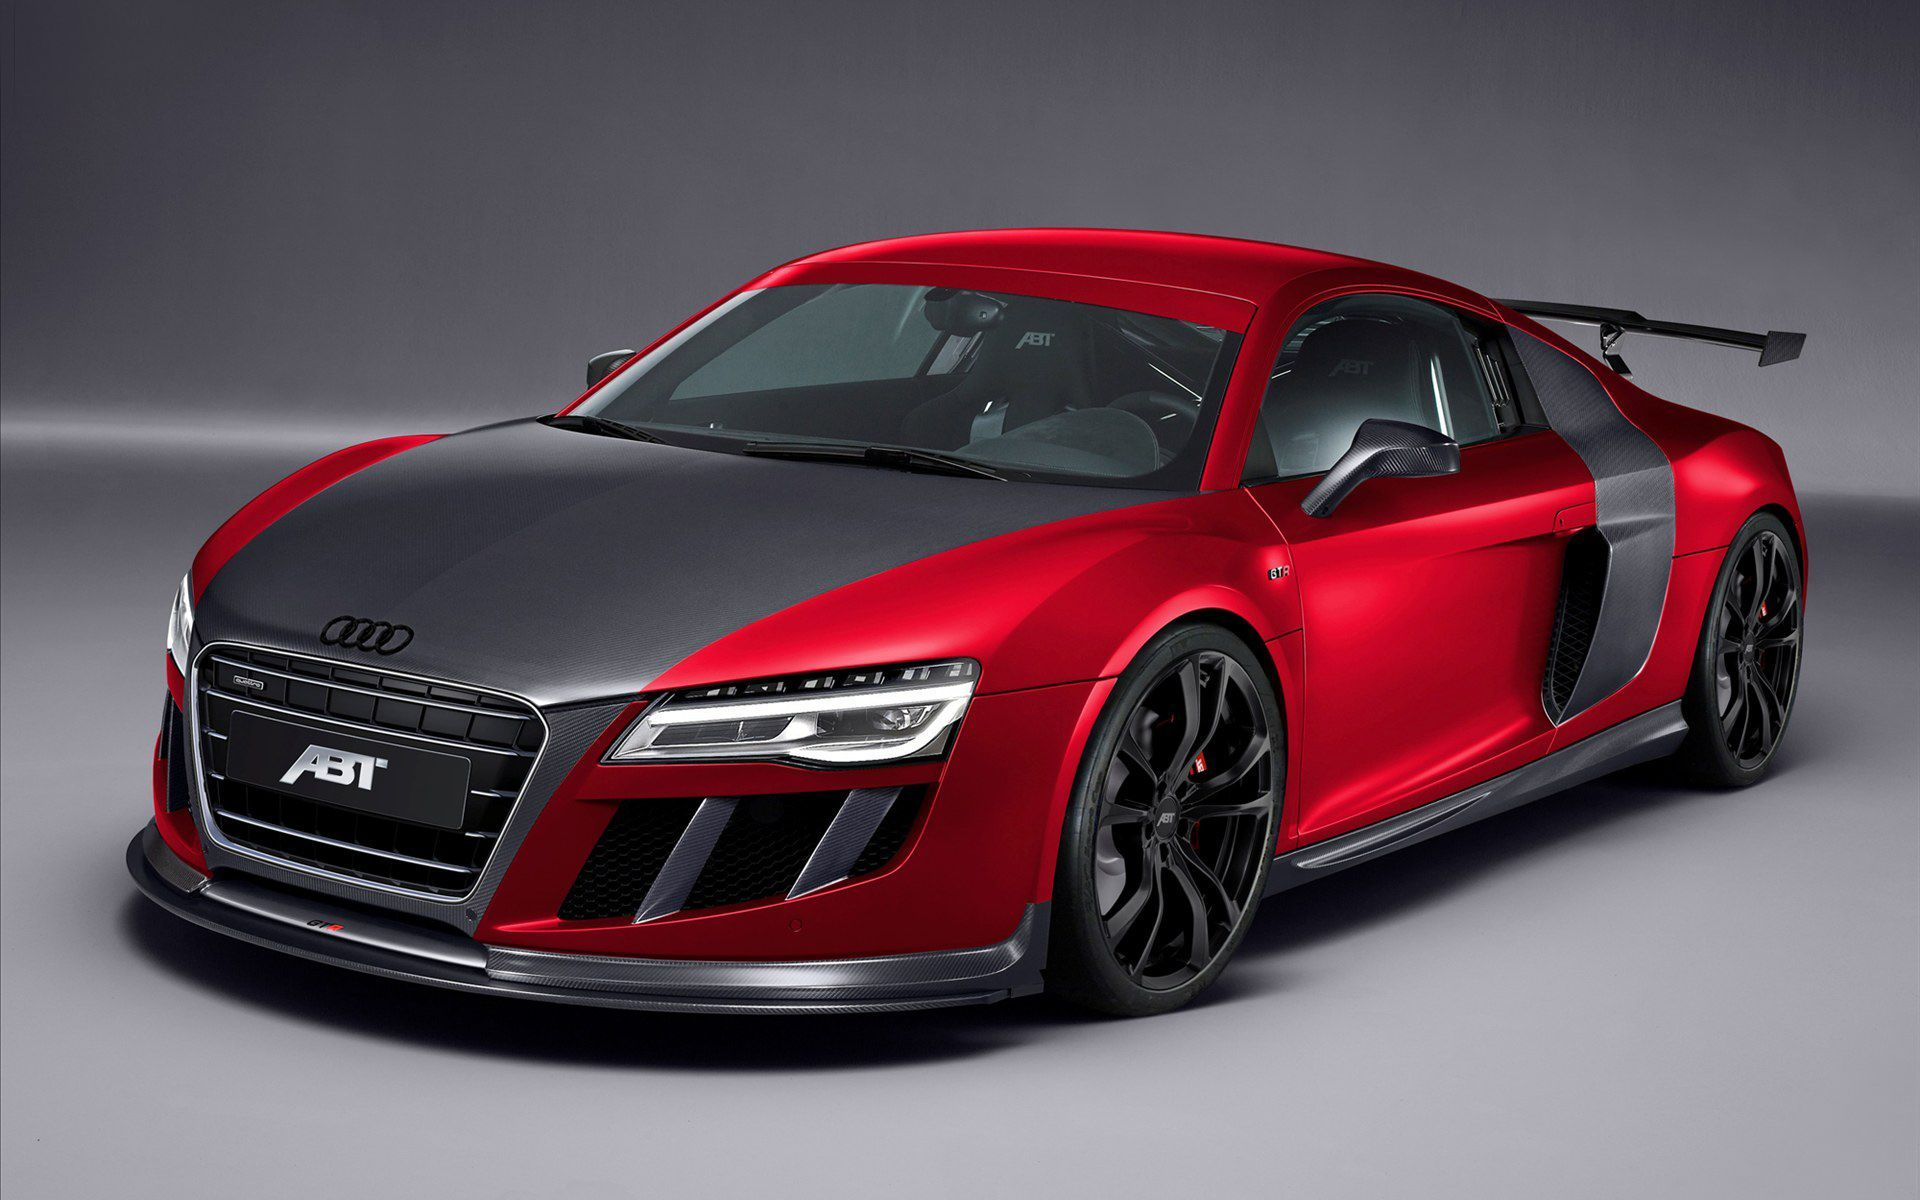 Audi R8 Desktop Wallpaper 21